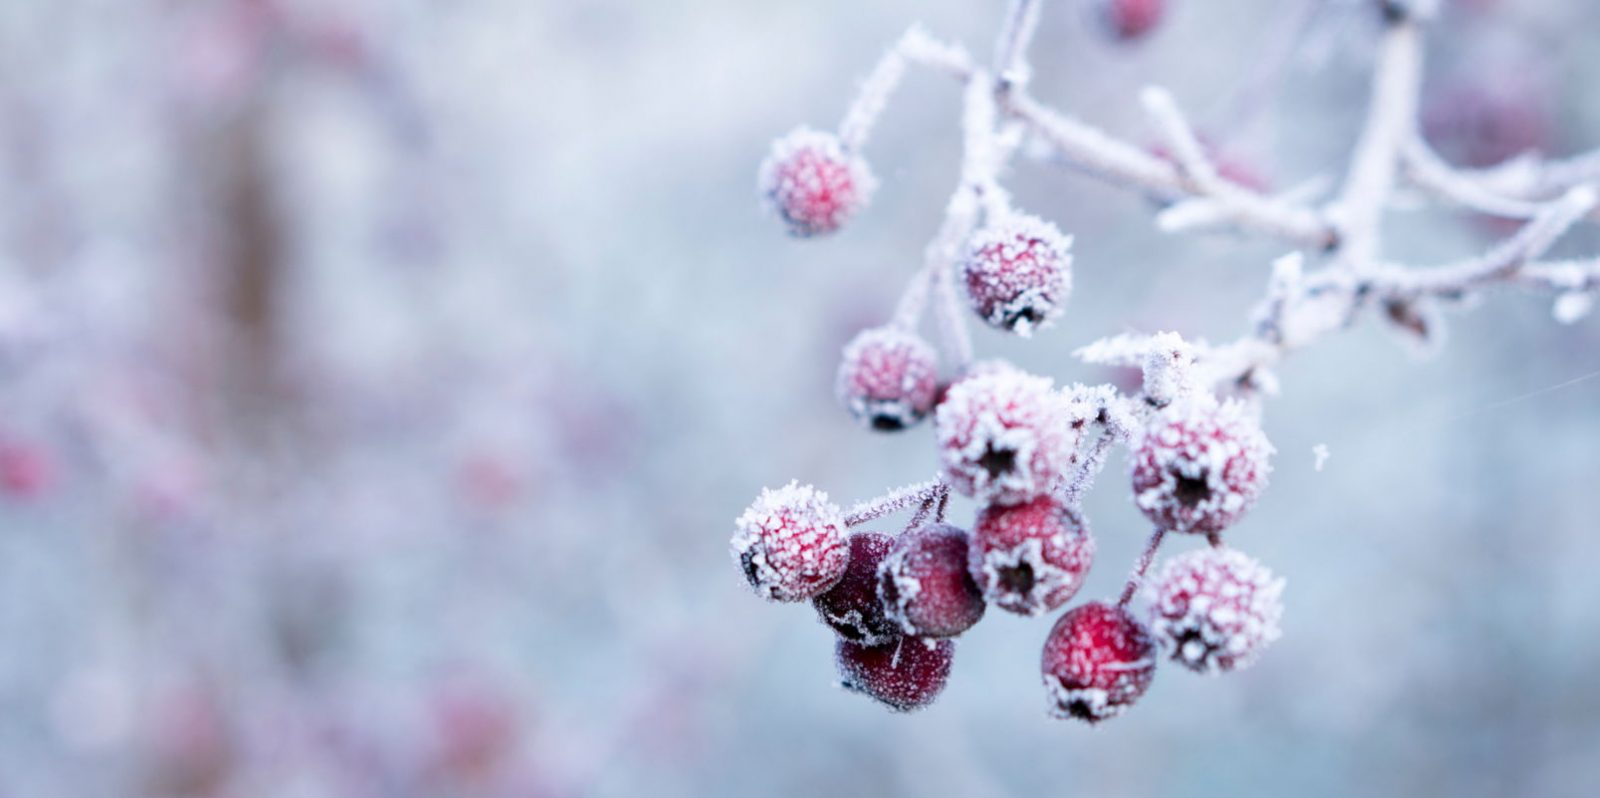 Winter background Tumblr - weblium